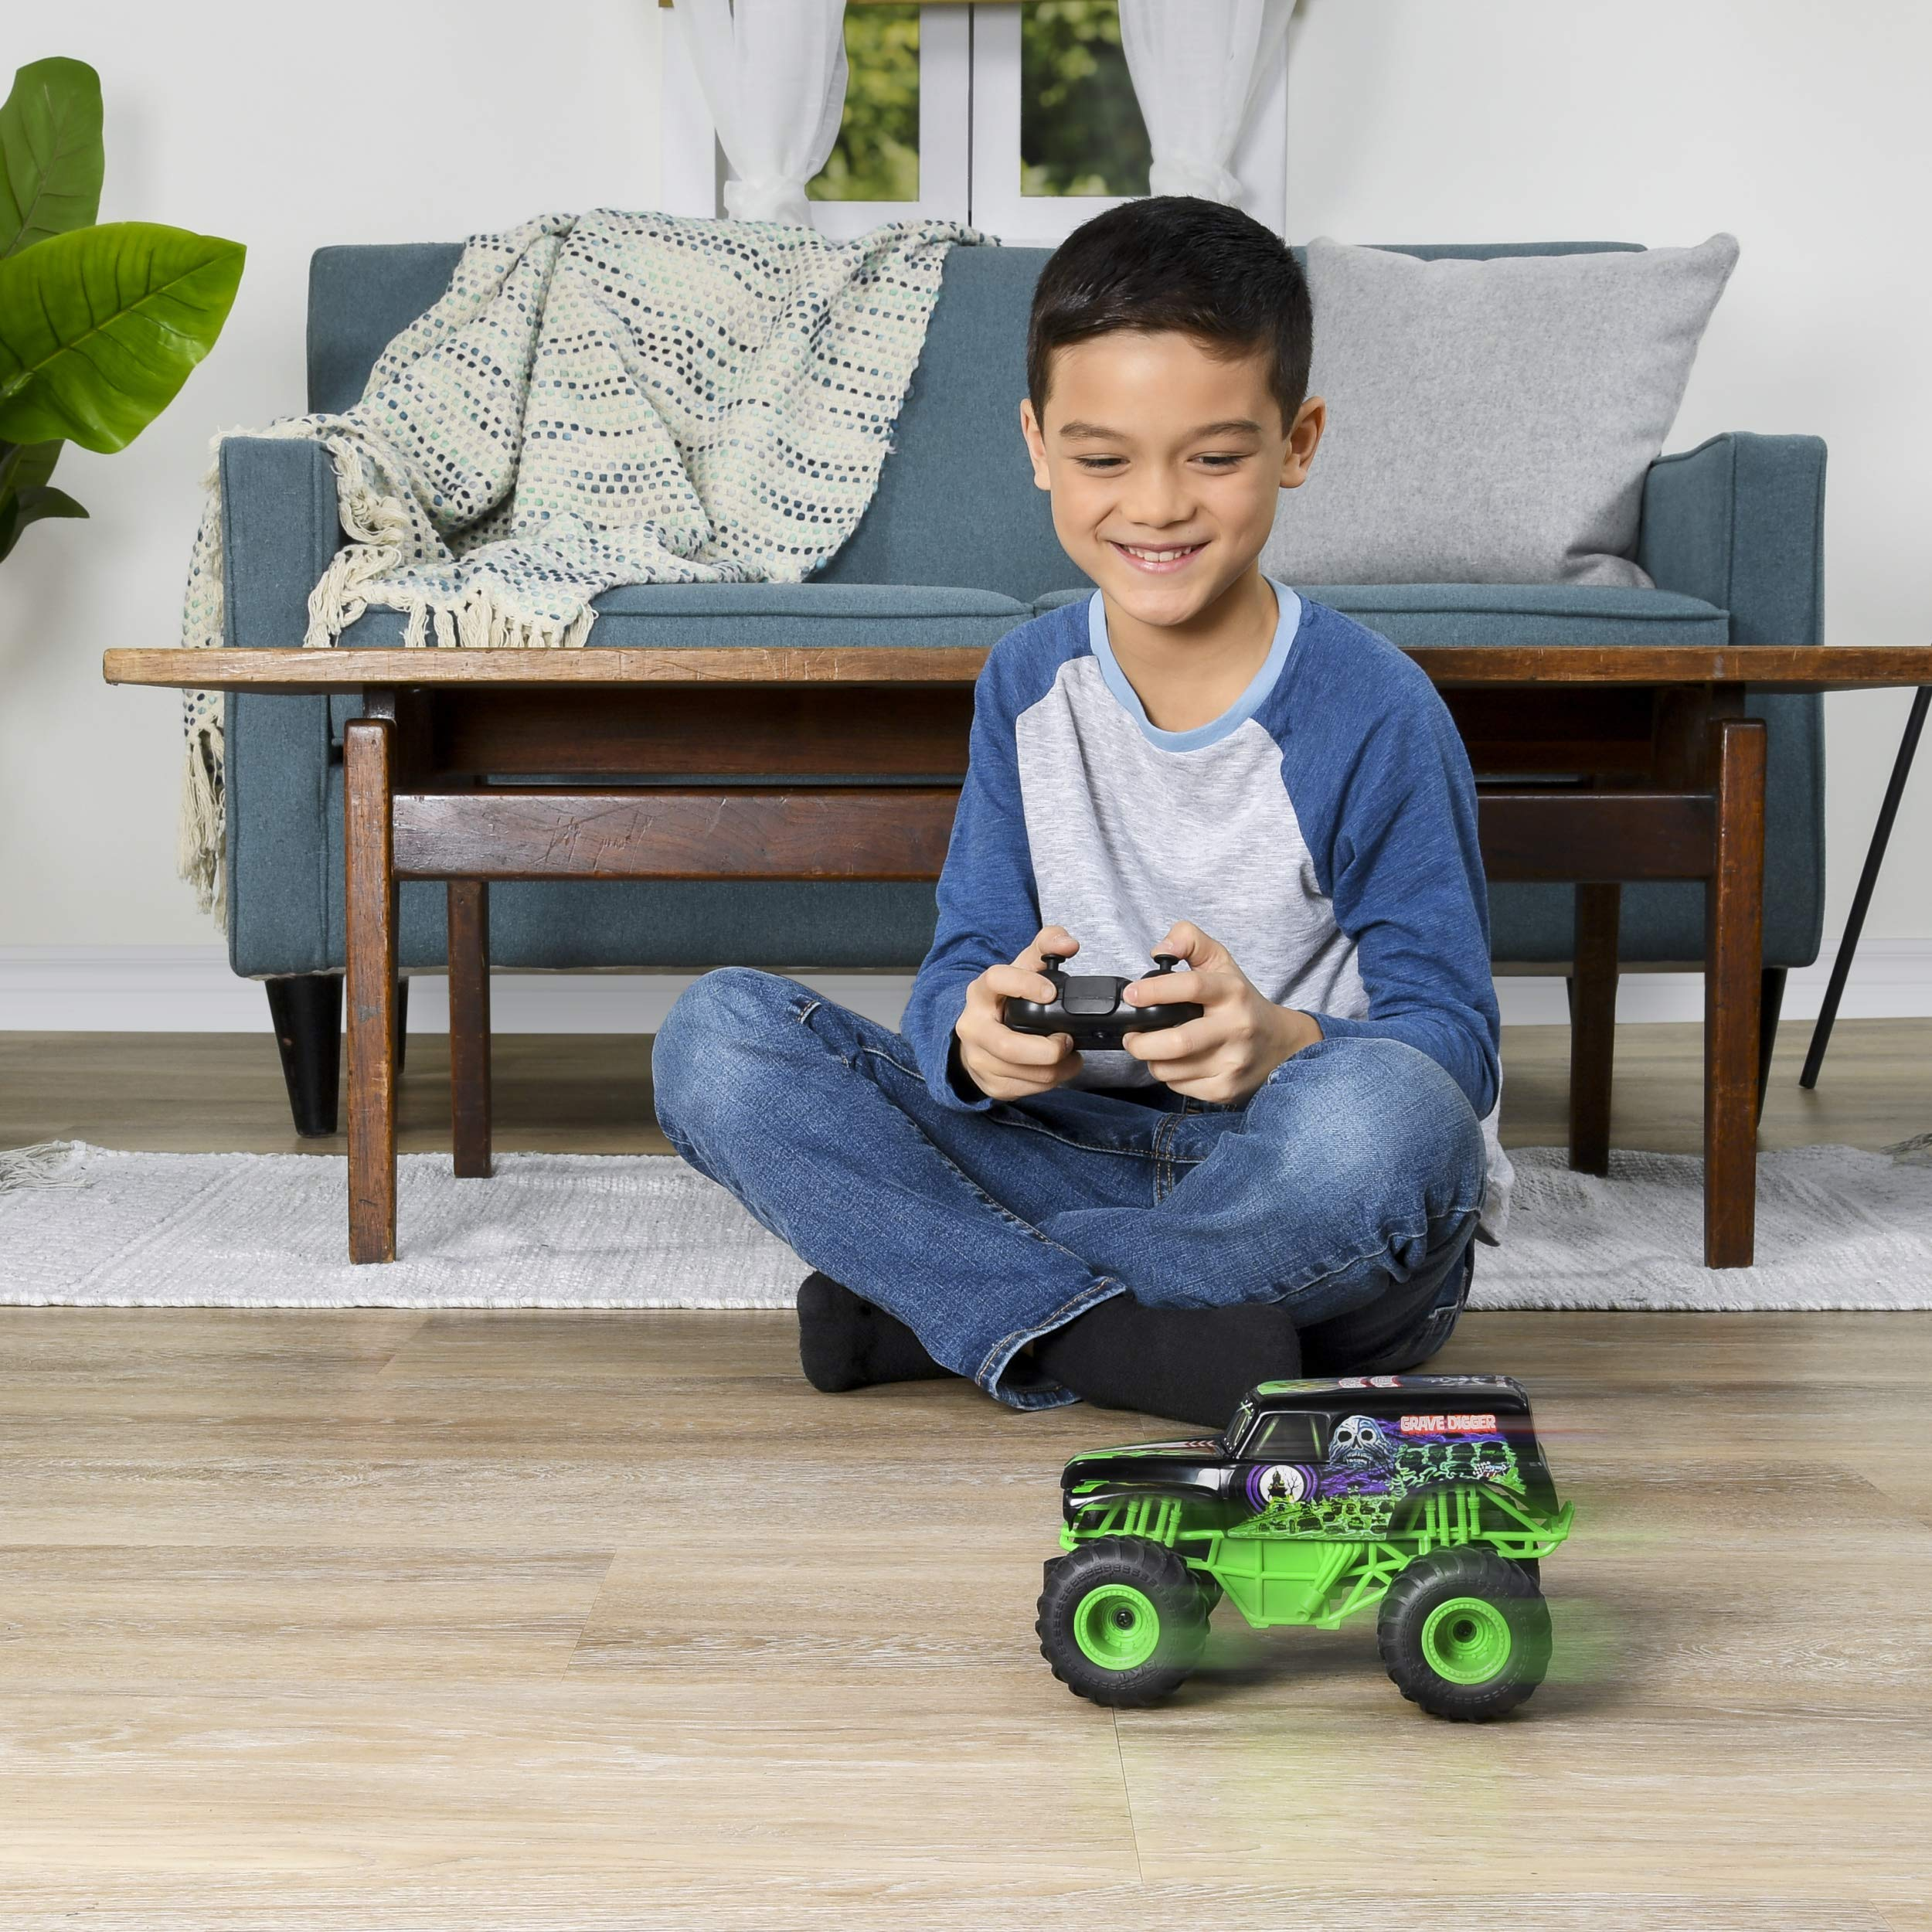 Monster Jam Official Grave Digger Remote Control Monster Truck, 1:24 Scale, 2.4 GHz, for Ages 4 and Up by Monster Jam (Image #3)